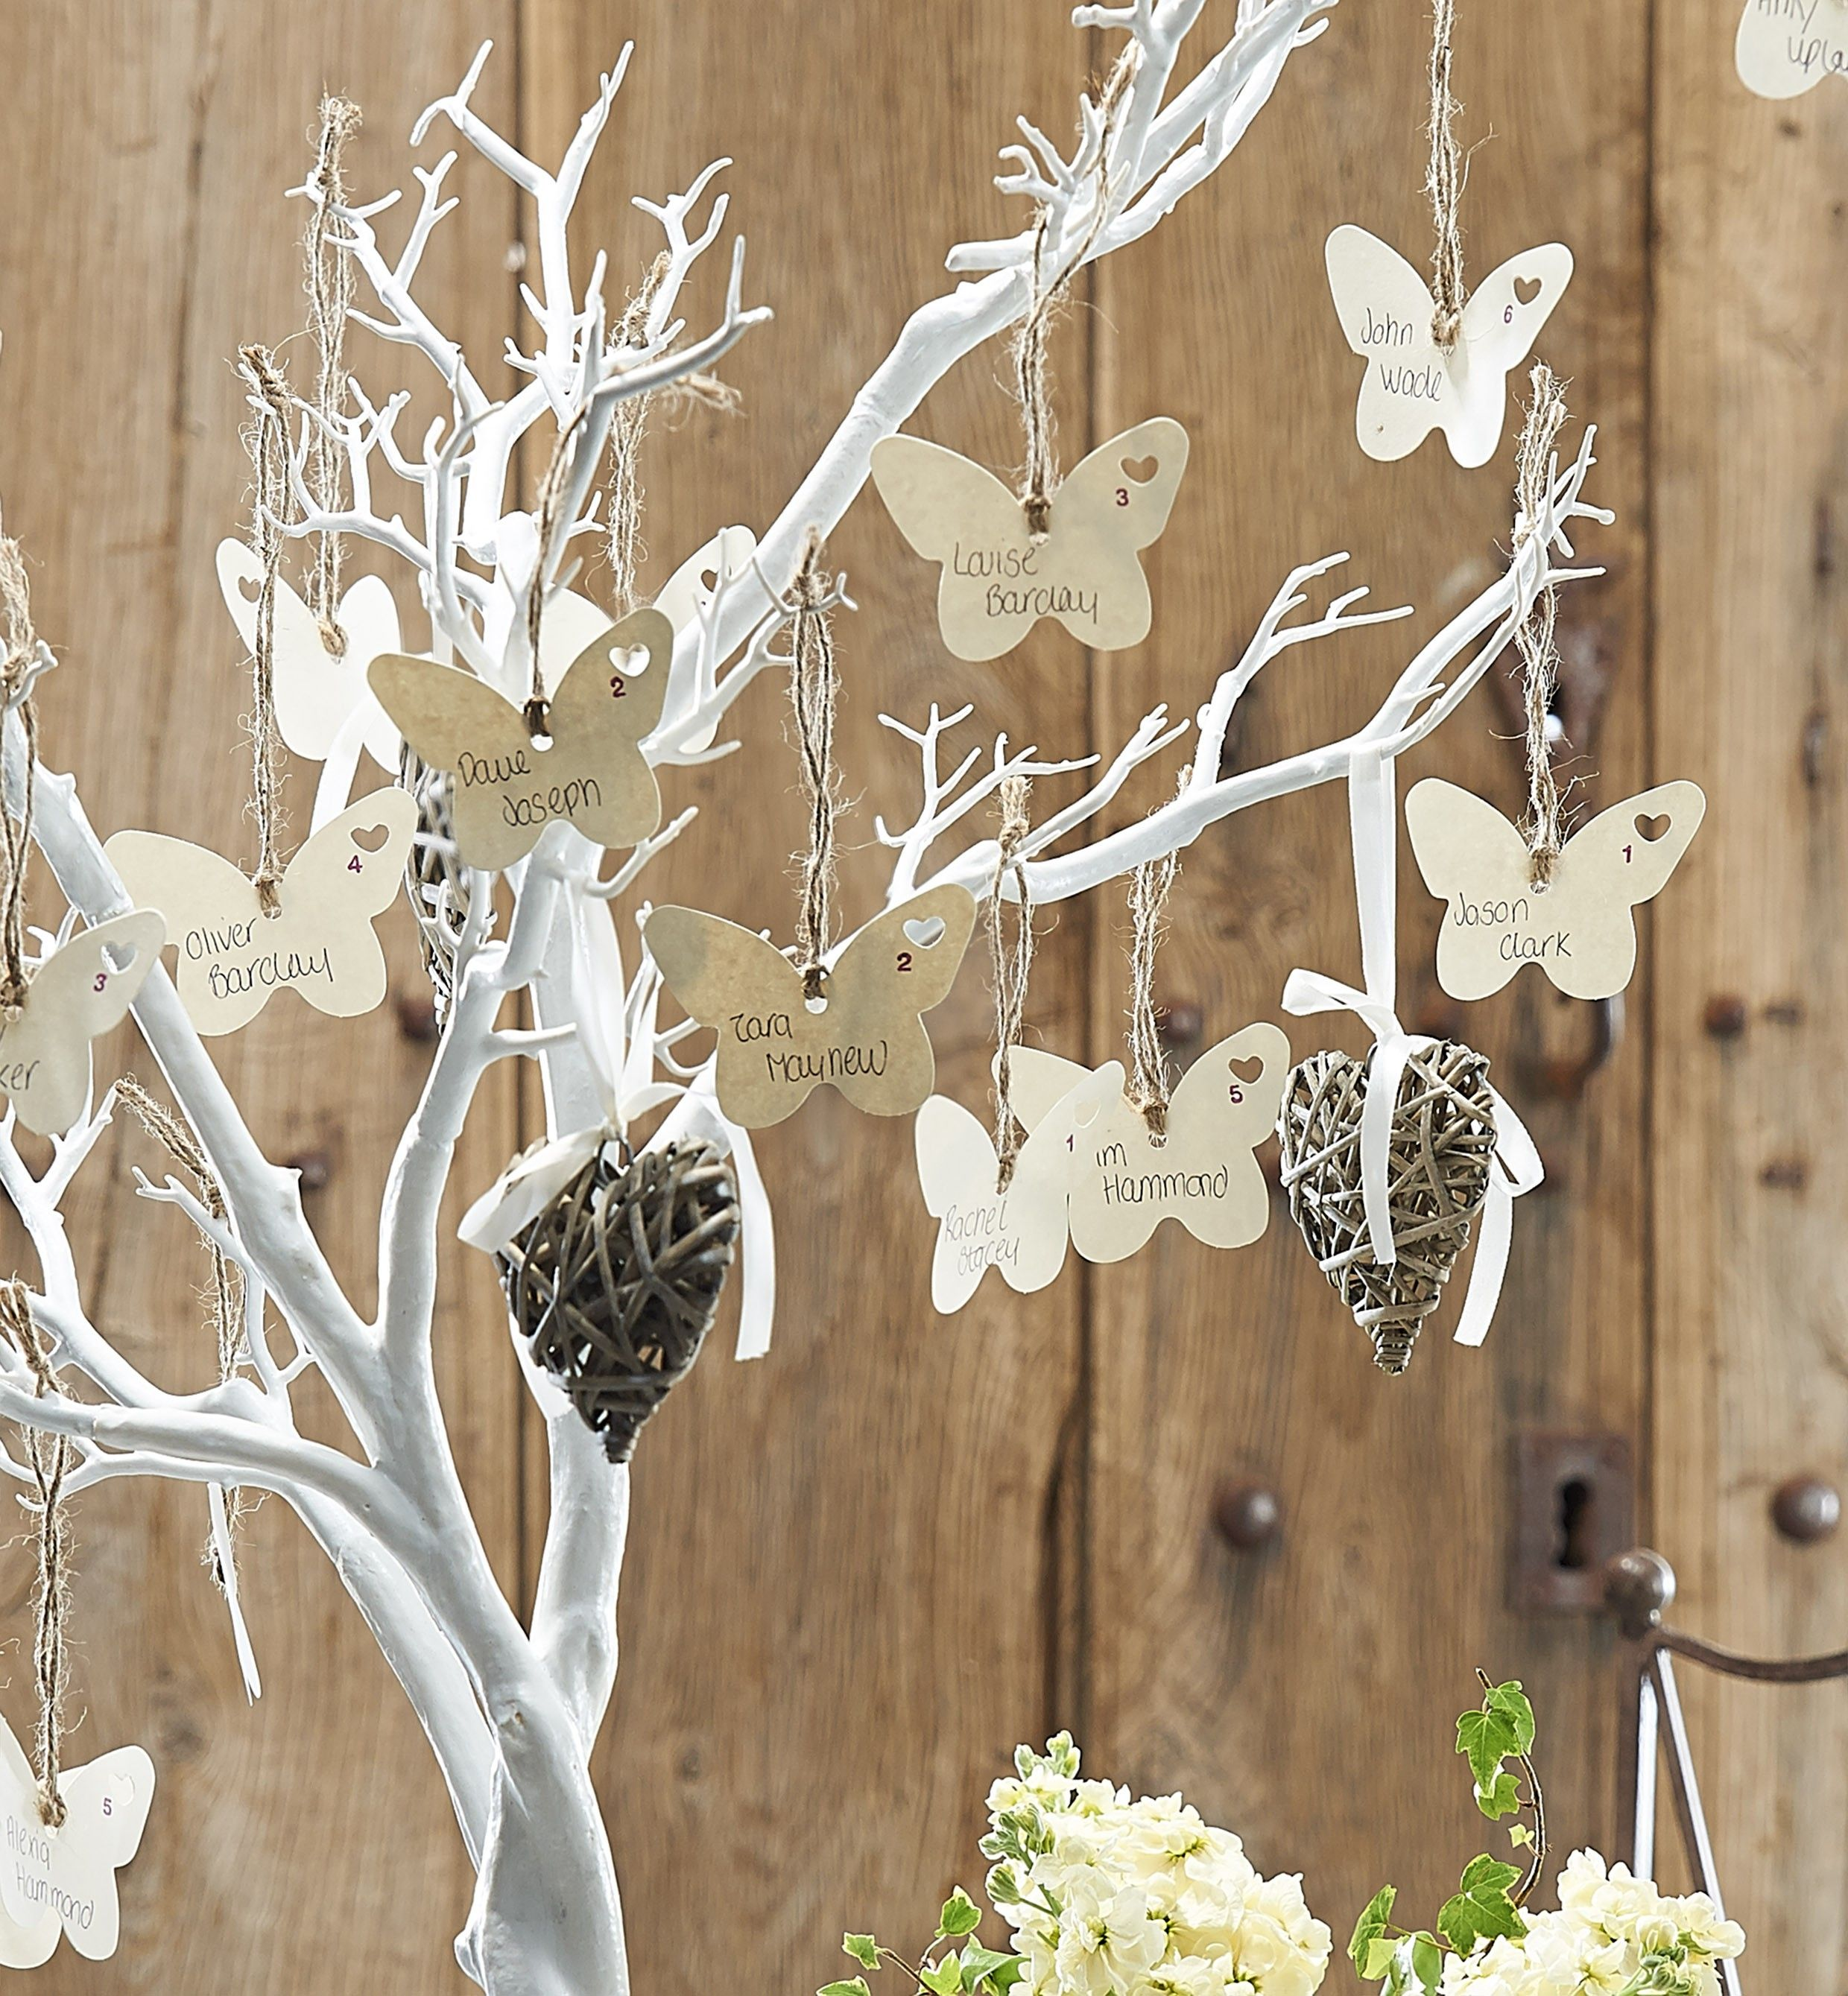 Beautiful Idea For A Wedding Using The Hobbycraft White Tree